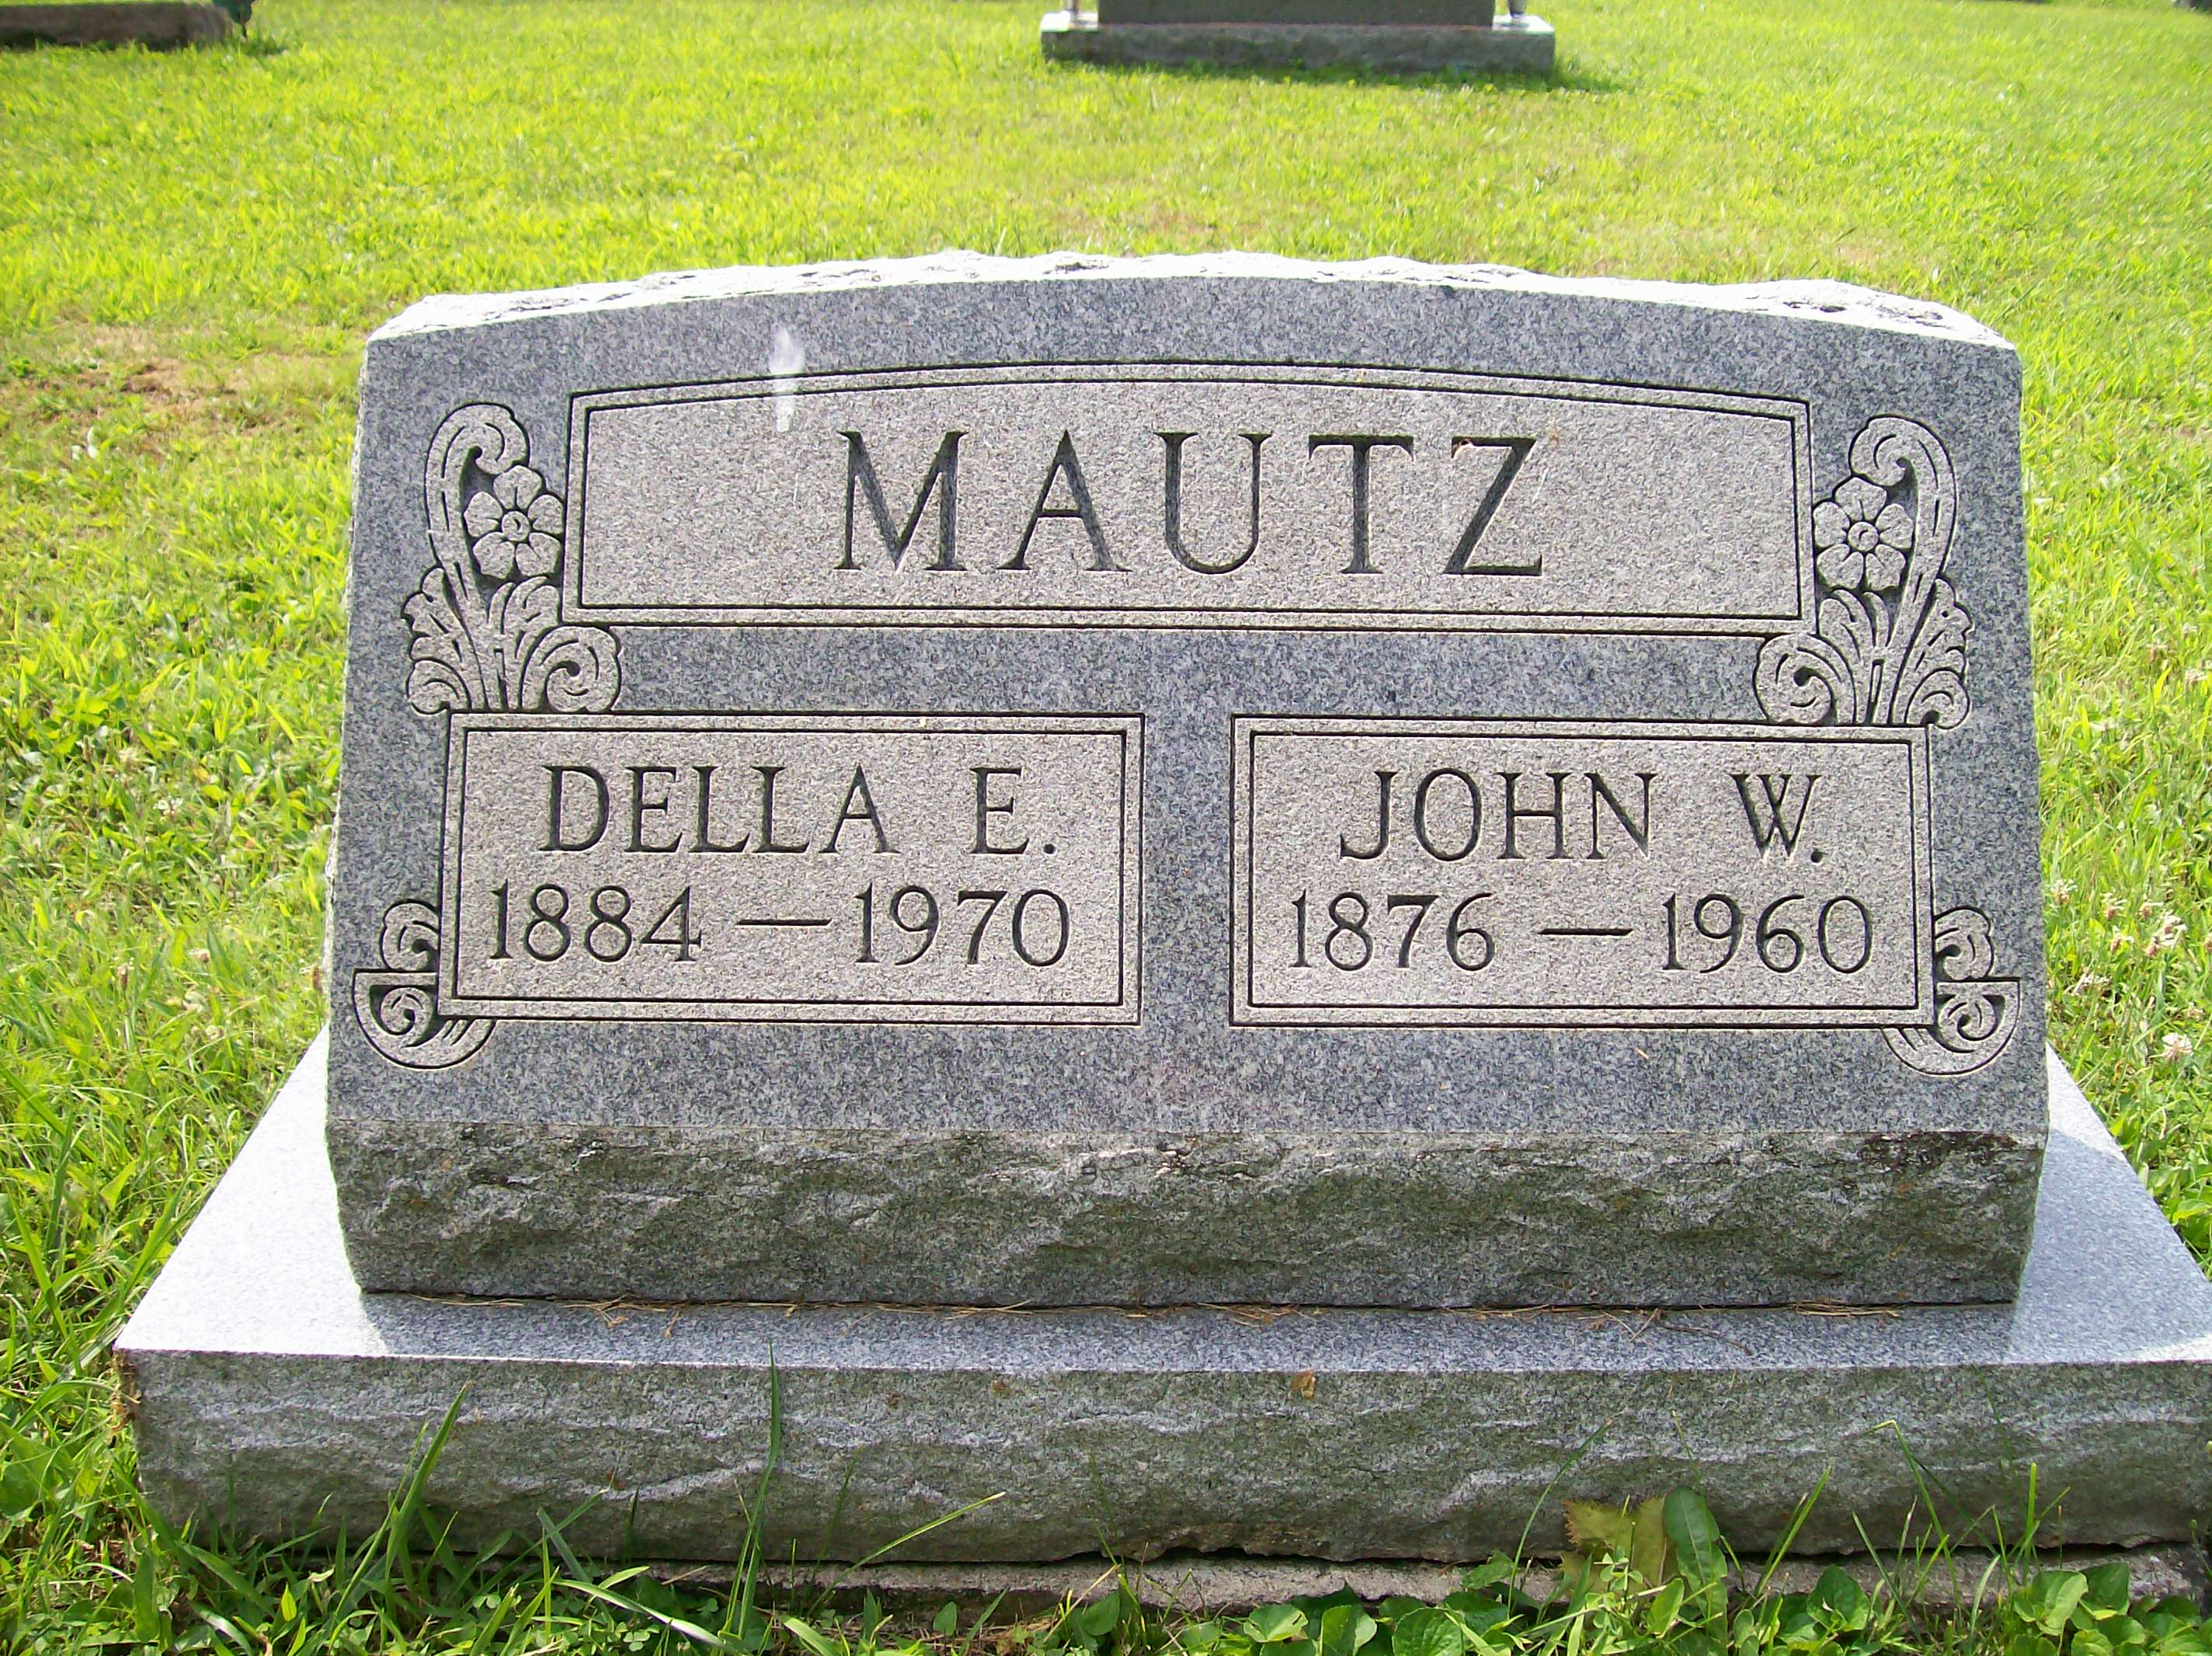 John W and Della E Dilts Mautz